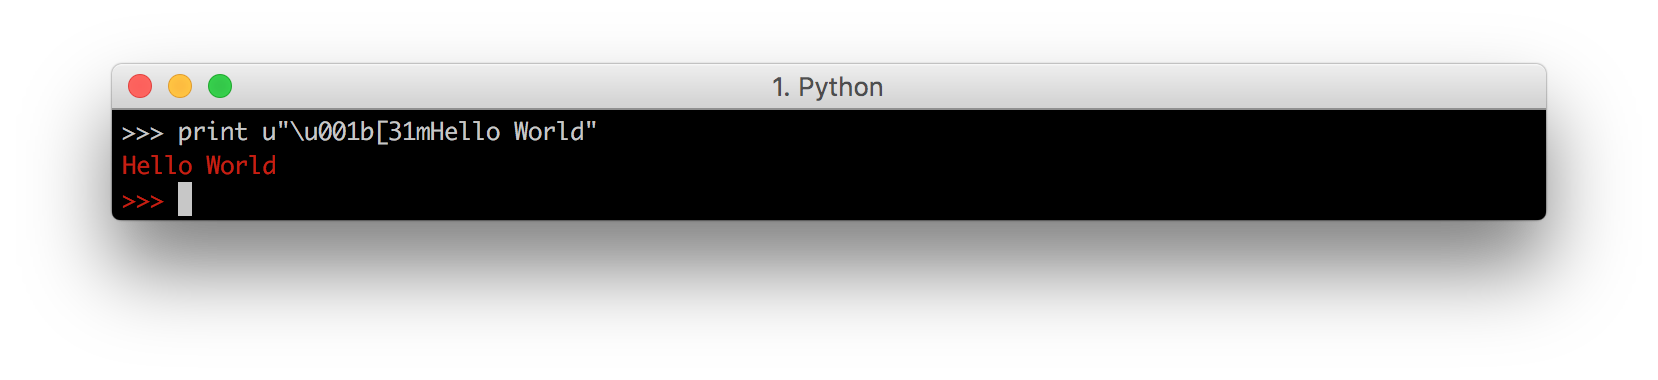 In Order For This To Work Python 2710 Is Not Necessary 3 Or Other Languages